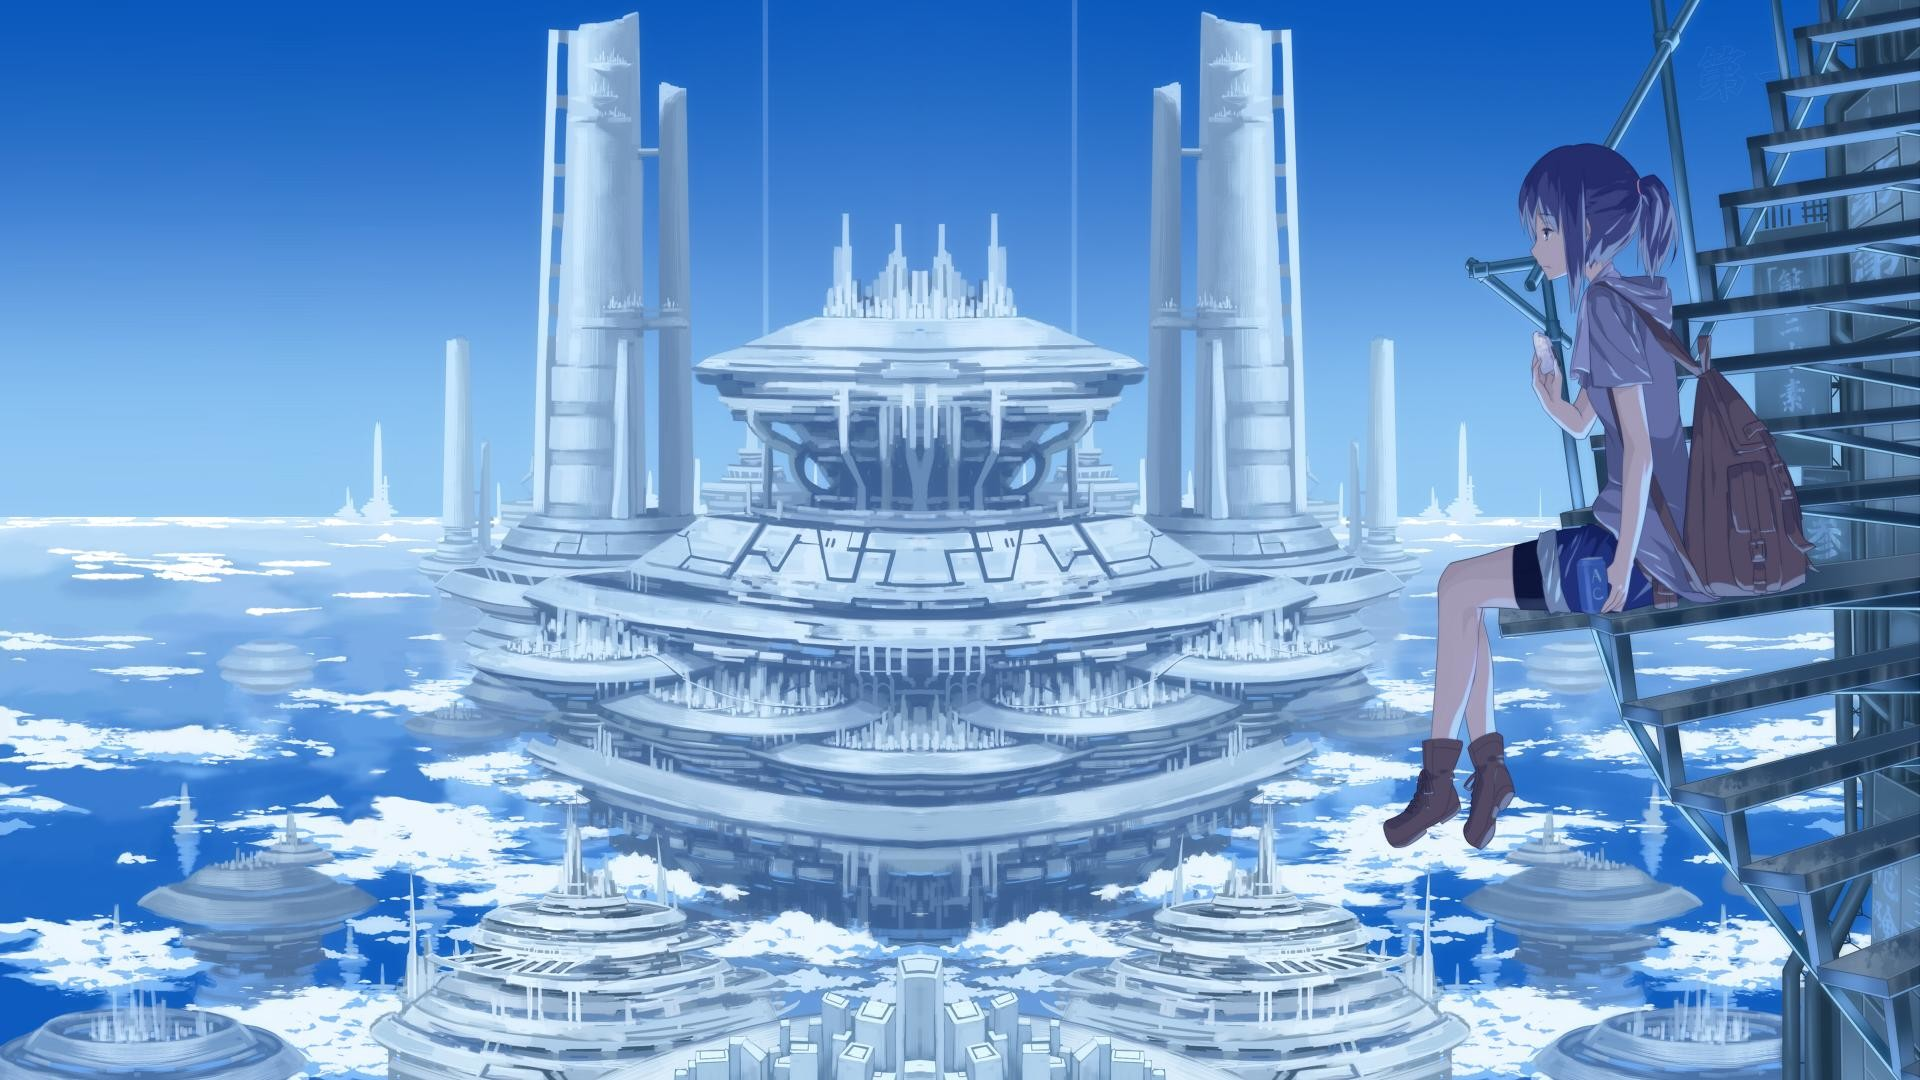 Anime Scenery Wallpapers High Resolution Is Cool Wallpapers